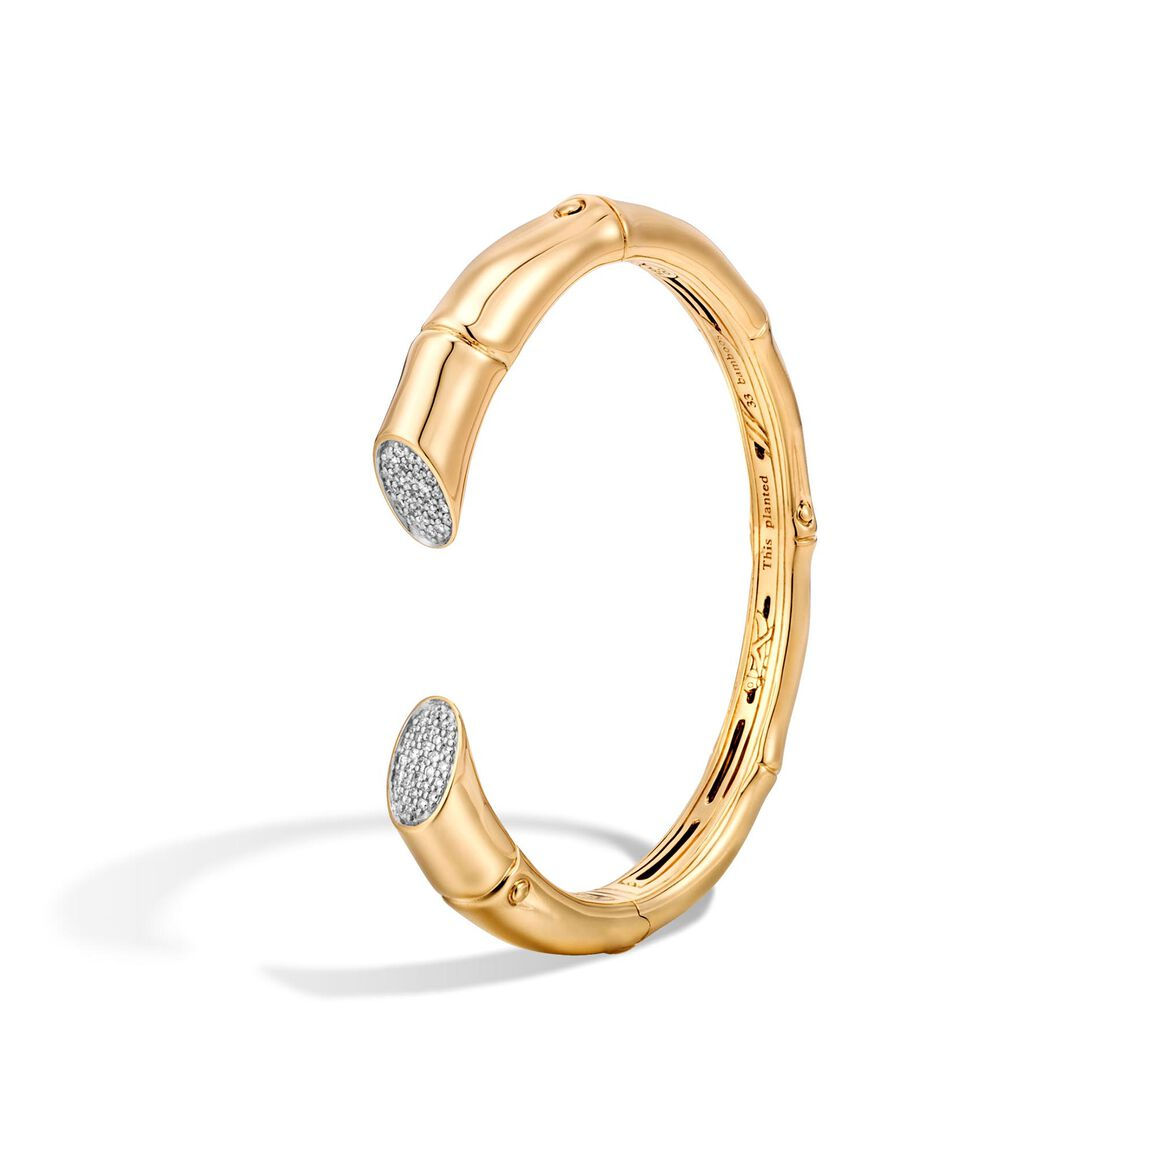 Bamboo 8.5MM Kick Cuff in 18K Gold with Diamonds